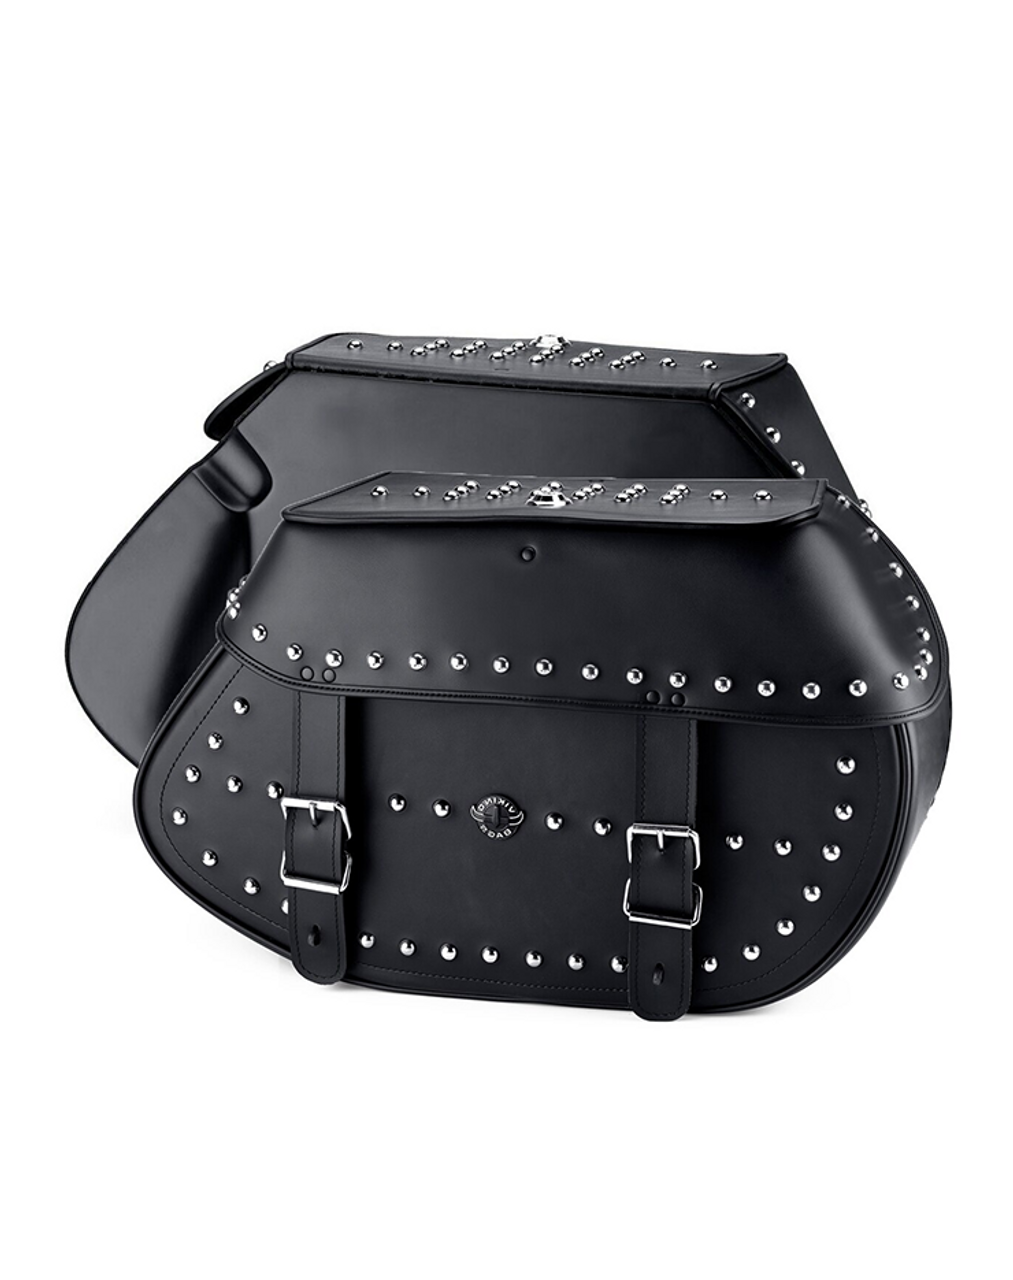 Viking Specific Studded Saddlebags For Harley Softail Night Train FXSTB Both Bags View